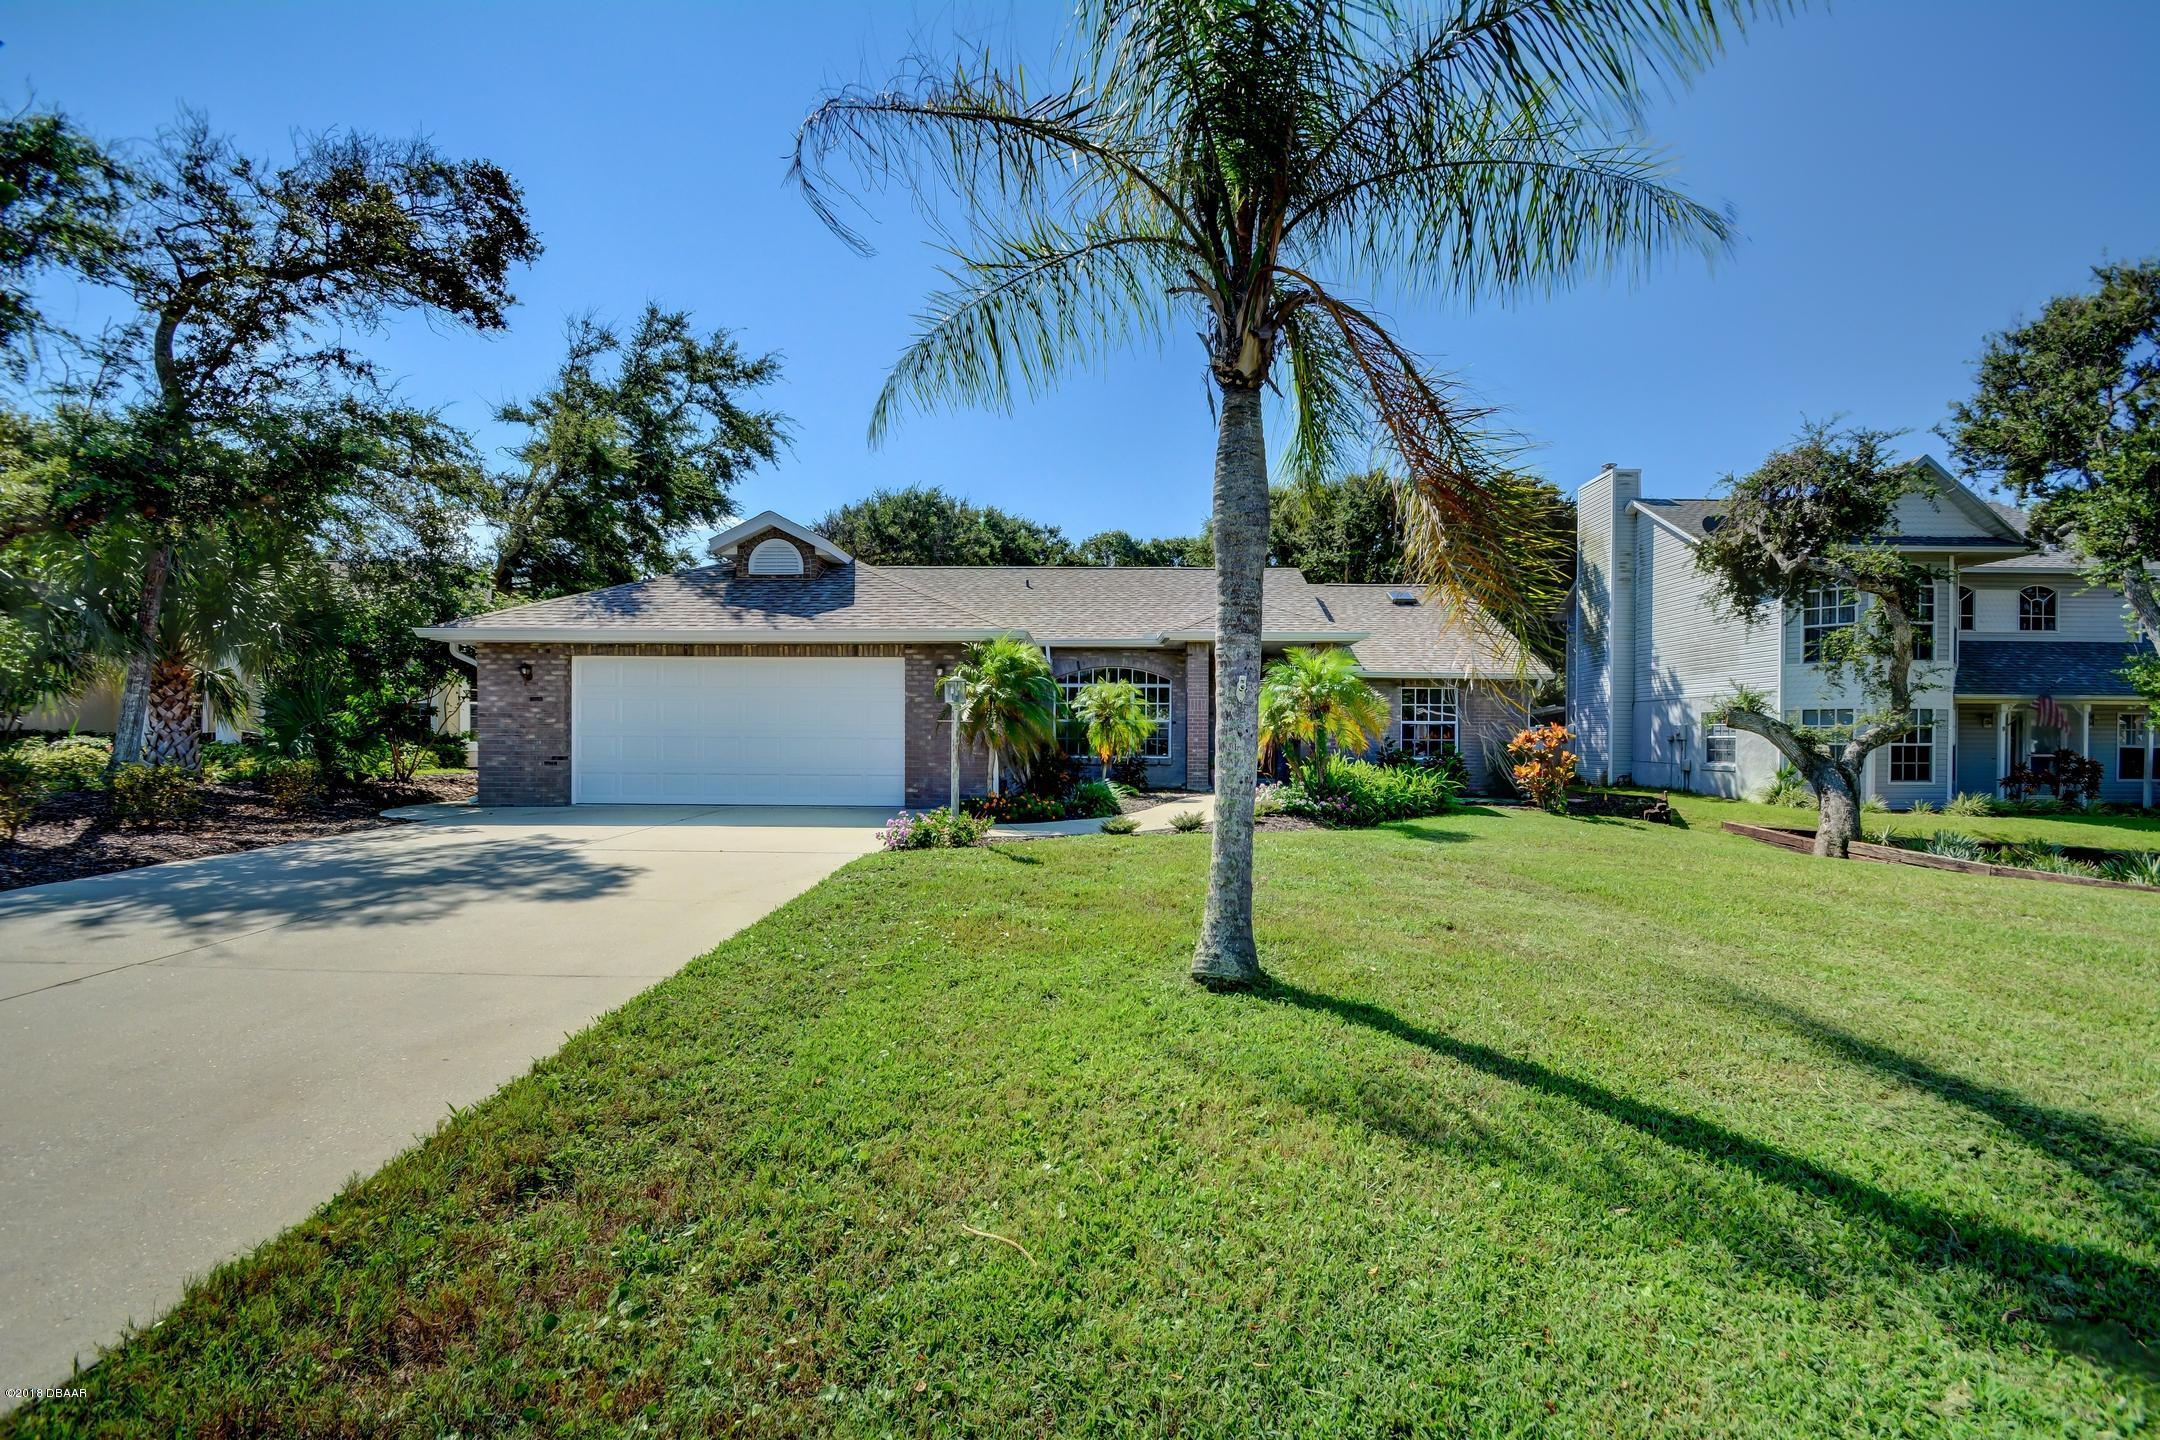 815 7th New Smyrna Beach - 1